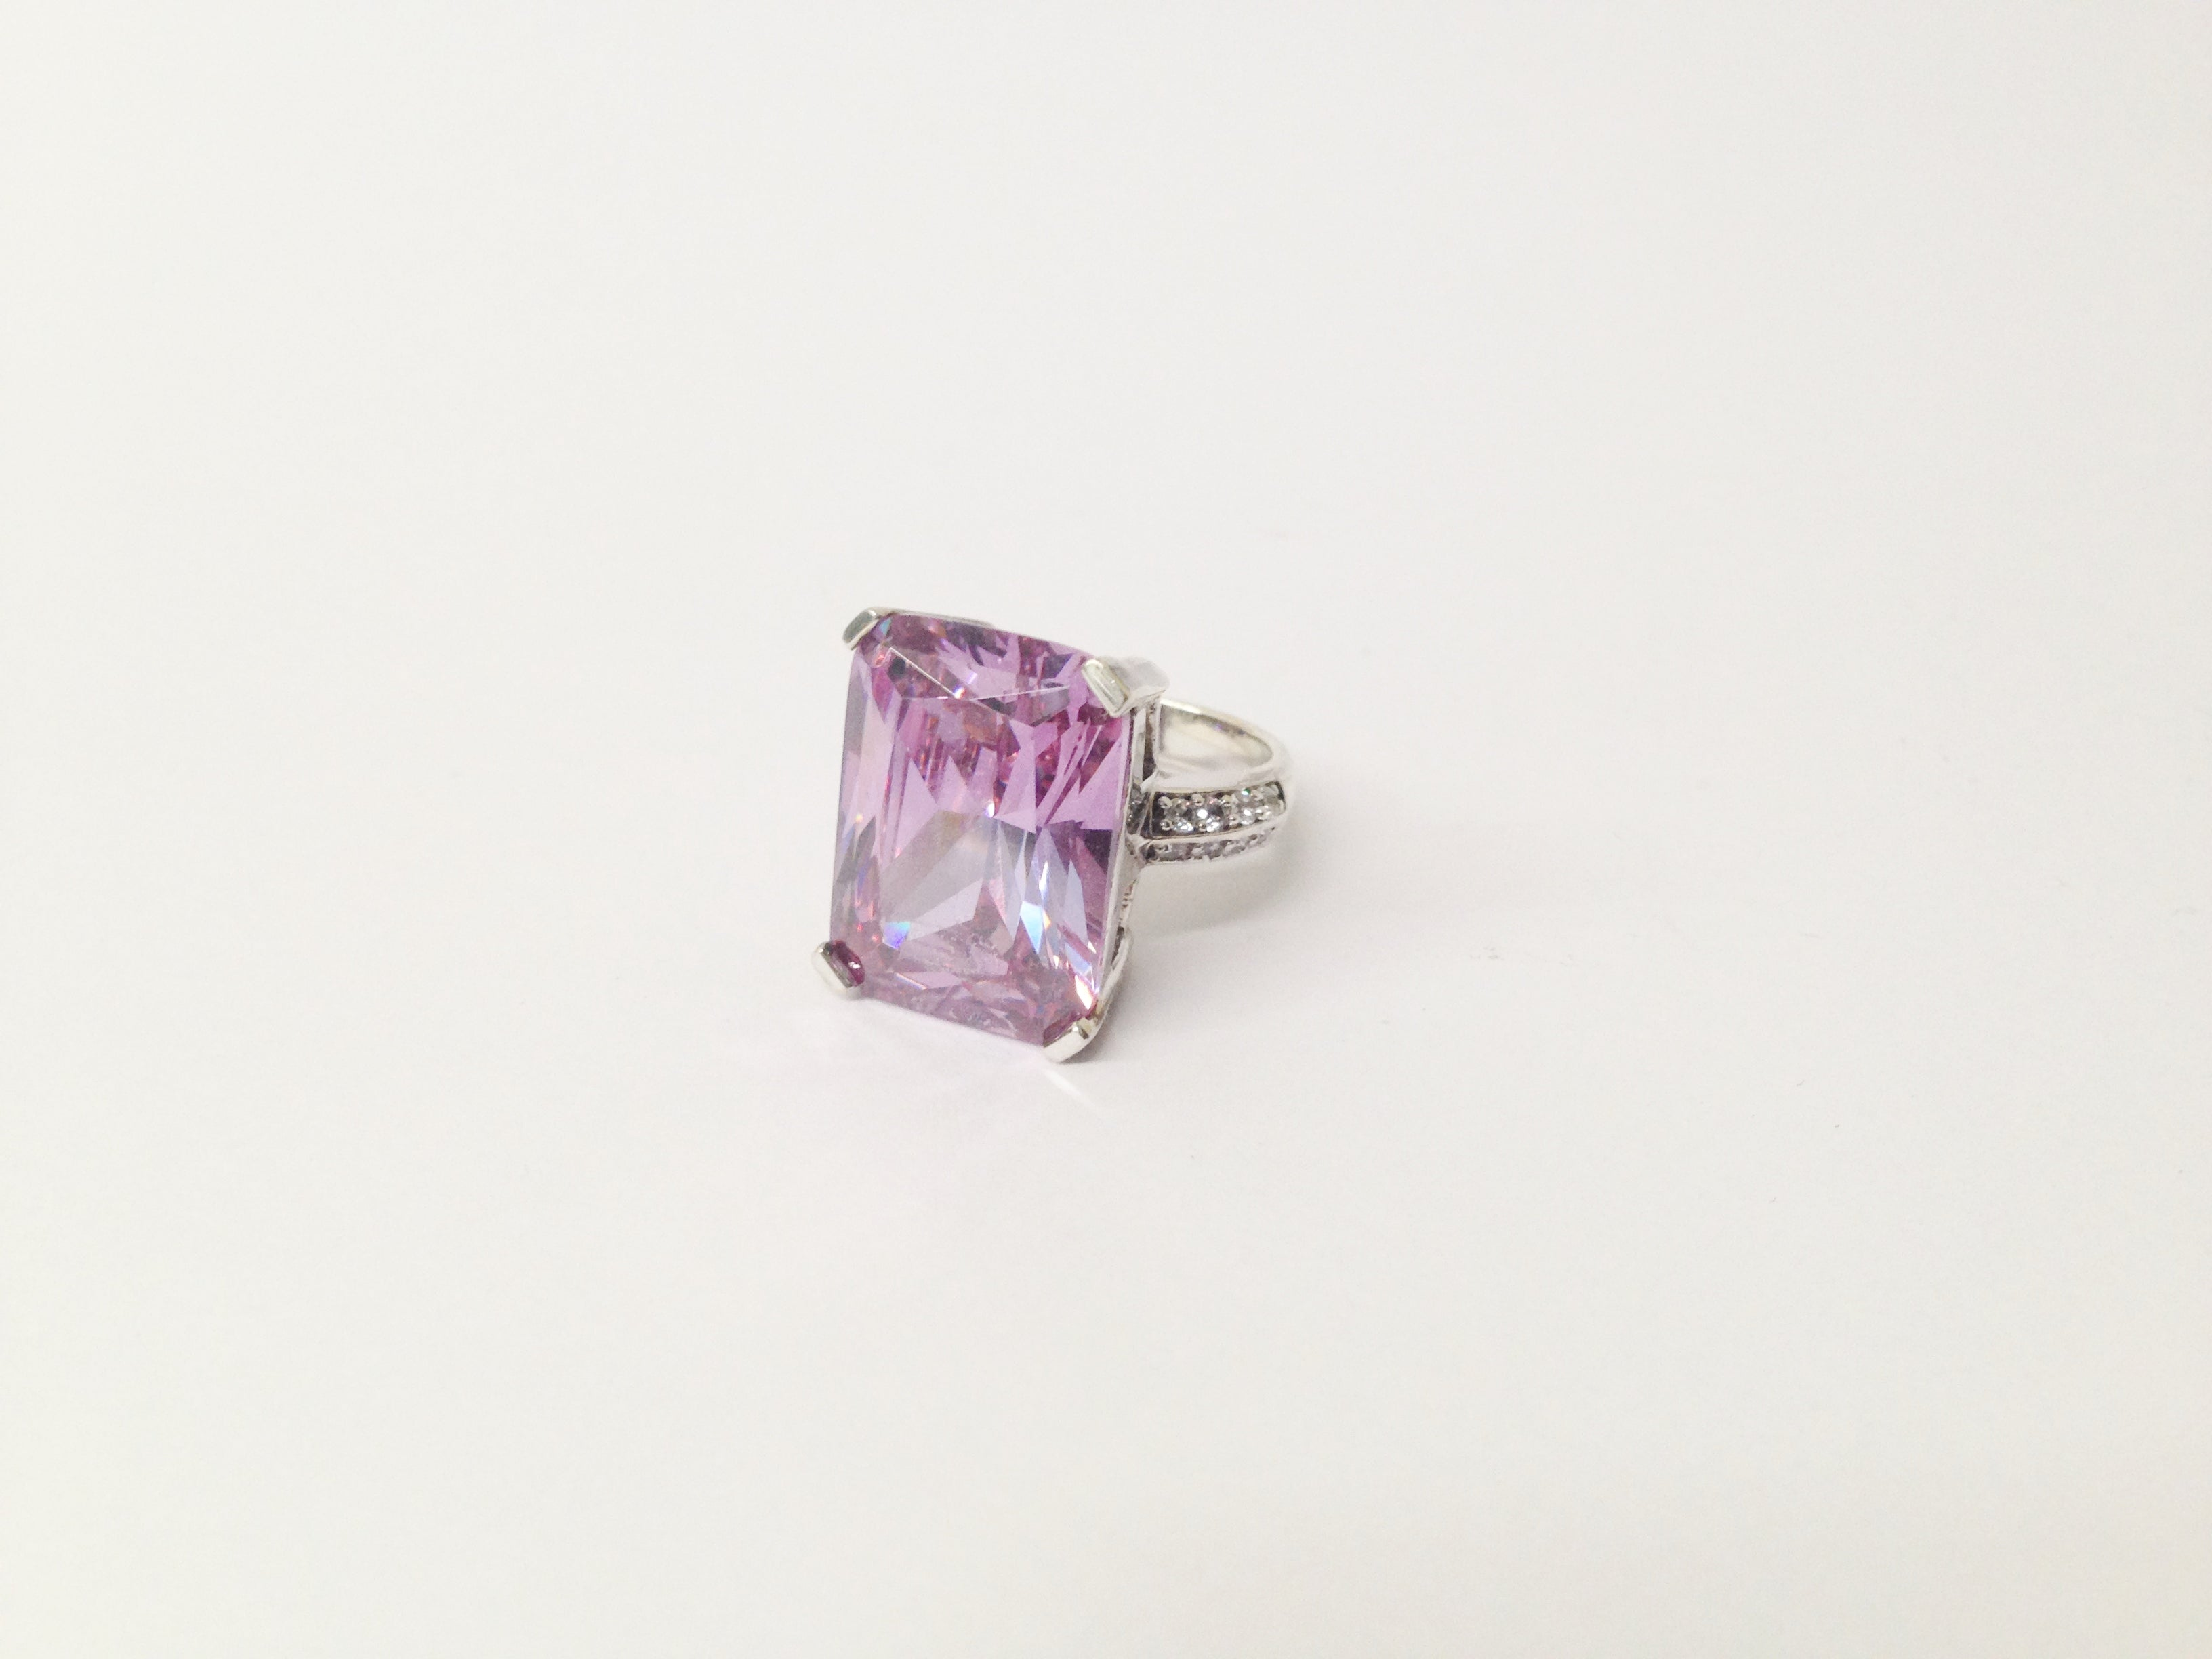 Large Purple CZ .925 Sterling Silver Ring www.hersandhistreasures.com/collections/sterling-silver-jewelry